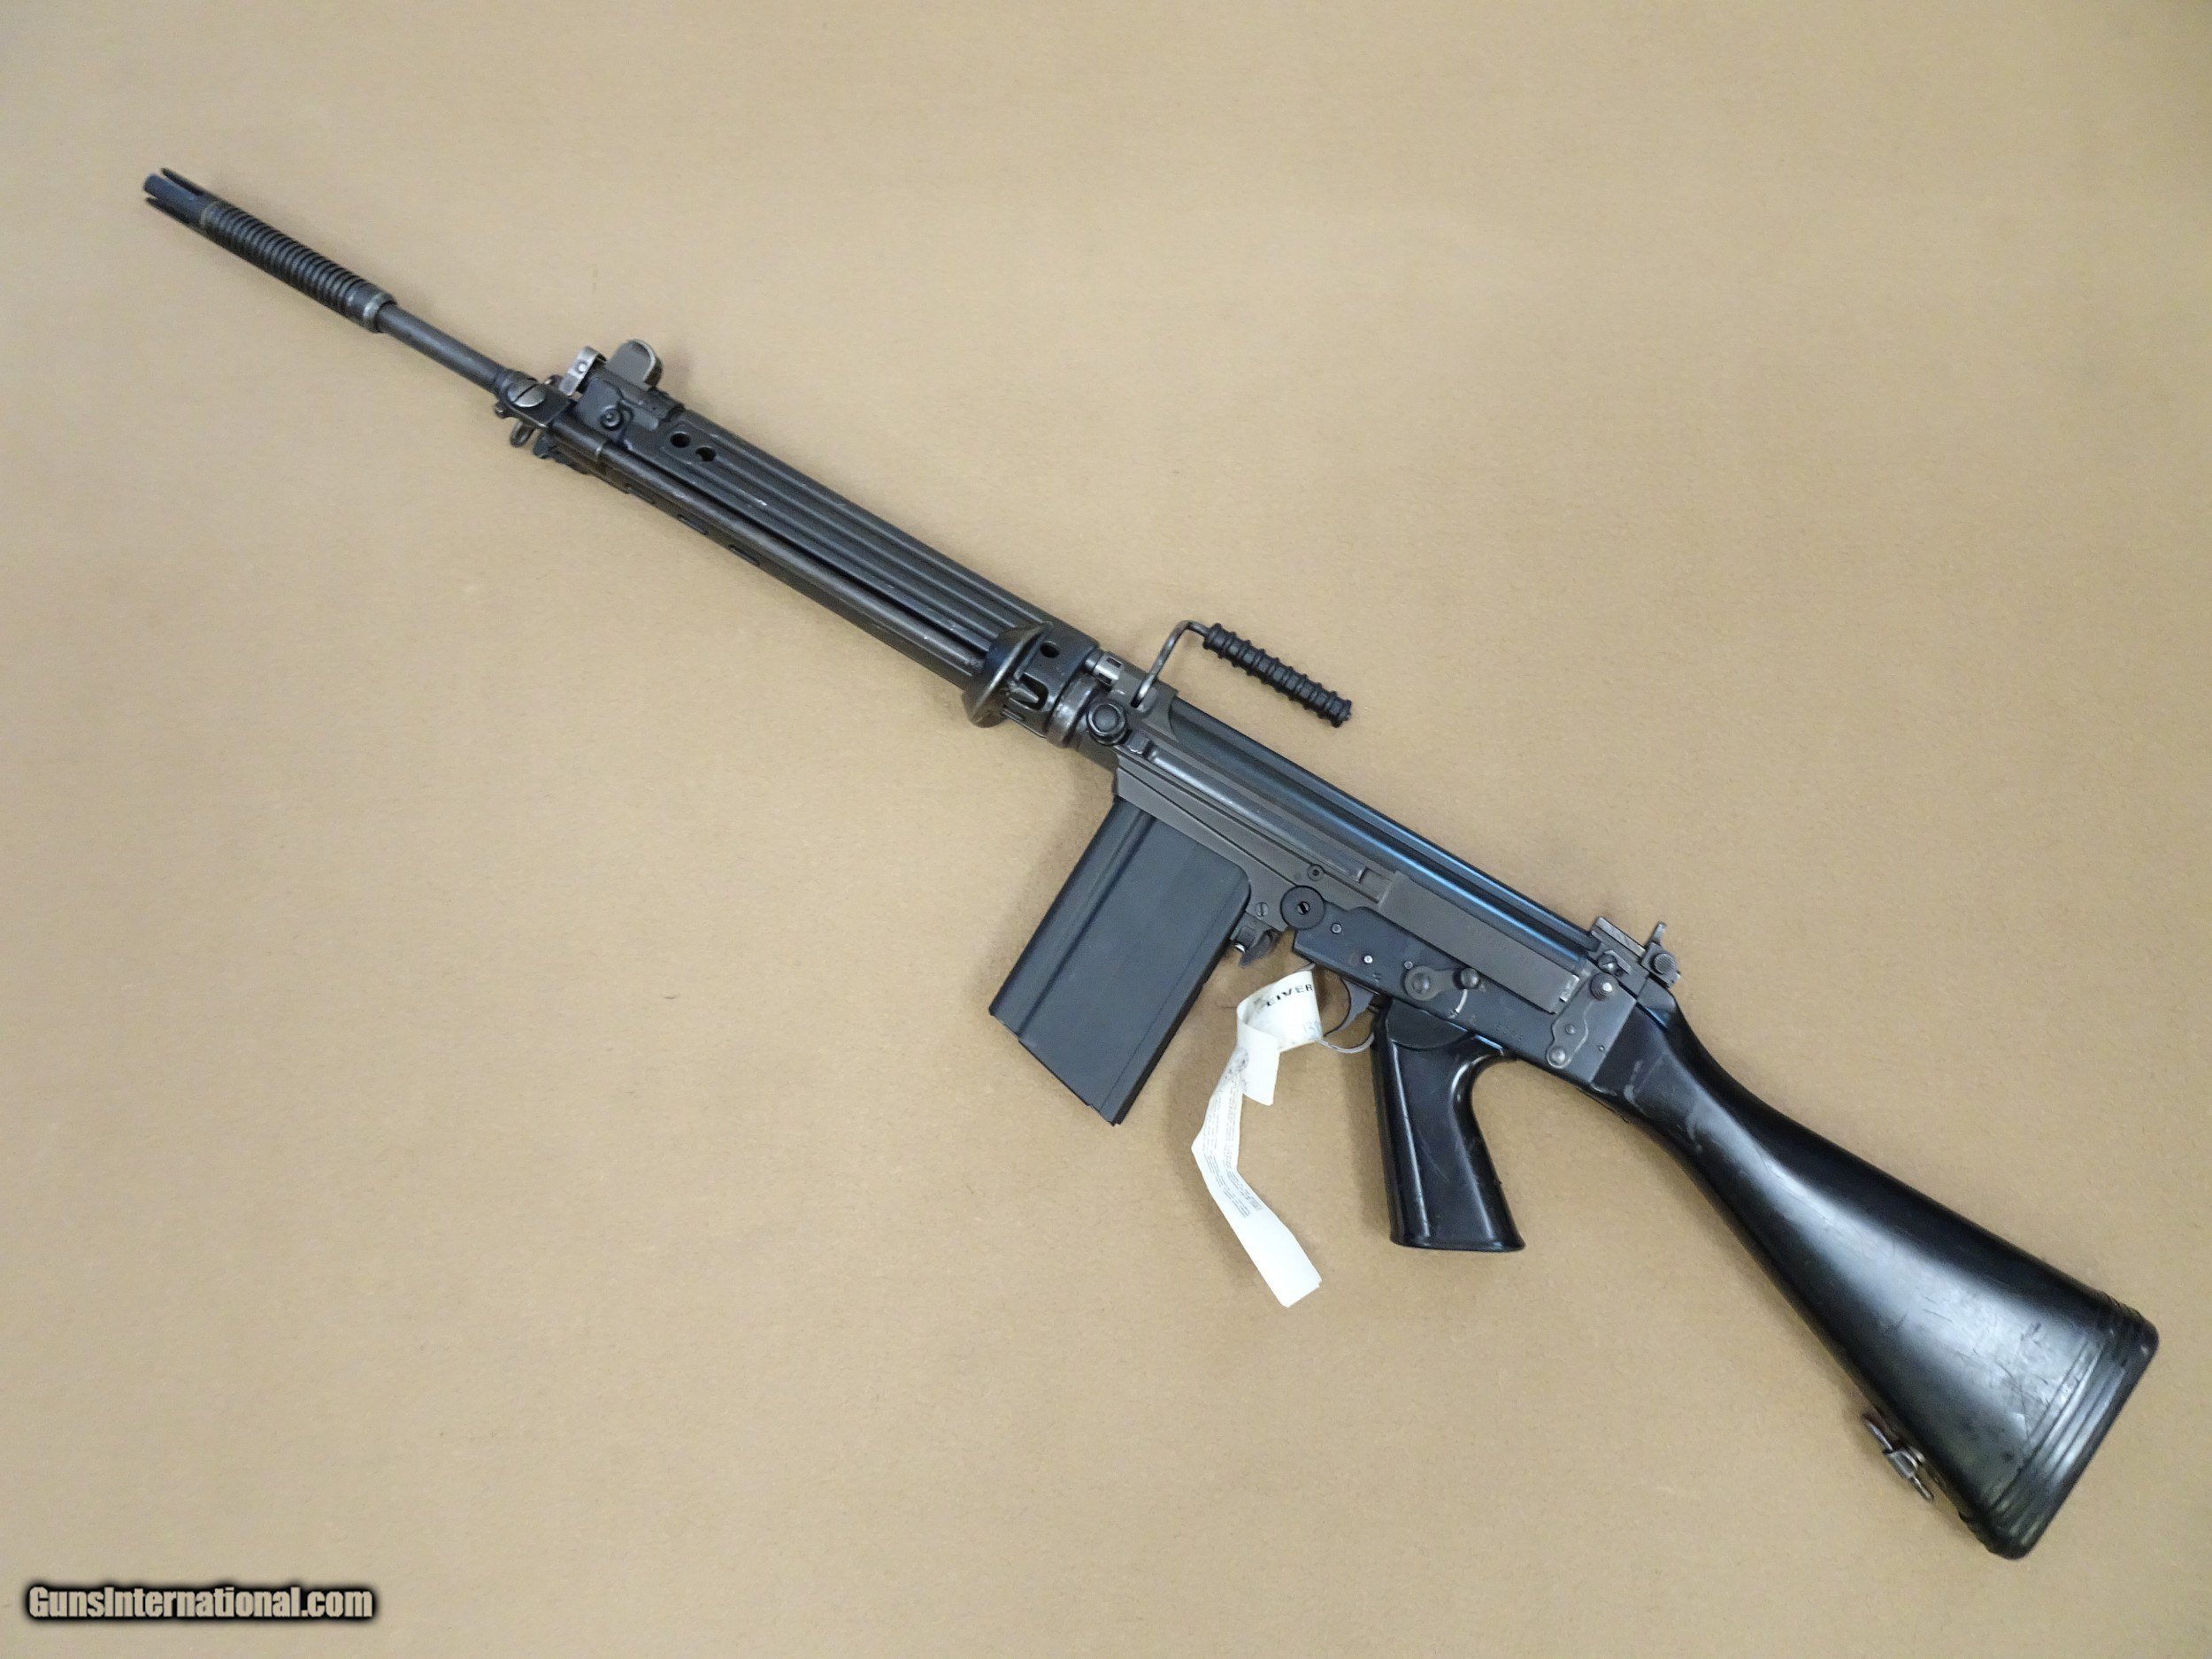 Century Arms Imbel Stg58 Fal Rifle In 308 Winchester Imbel Gear